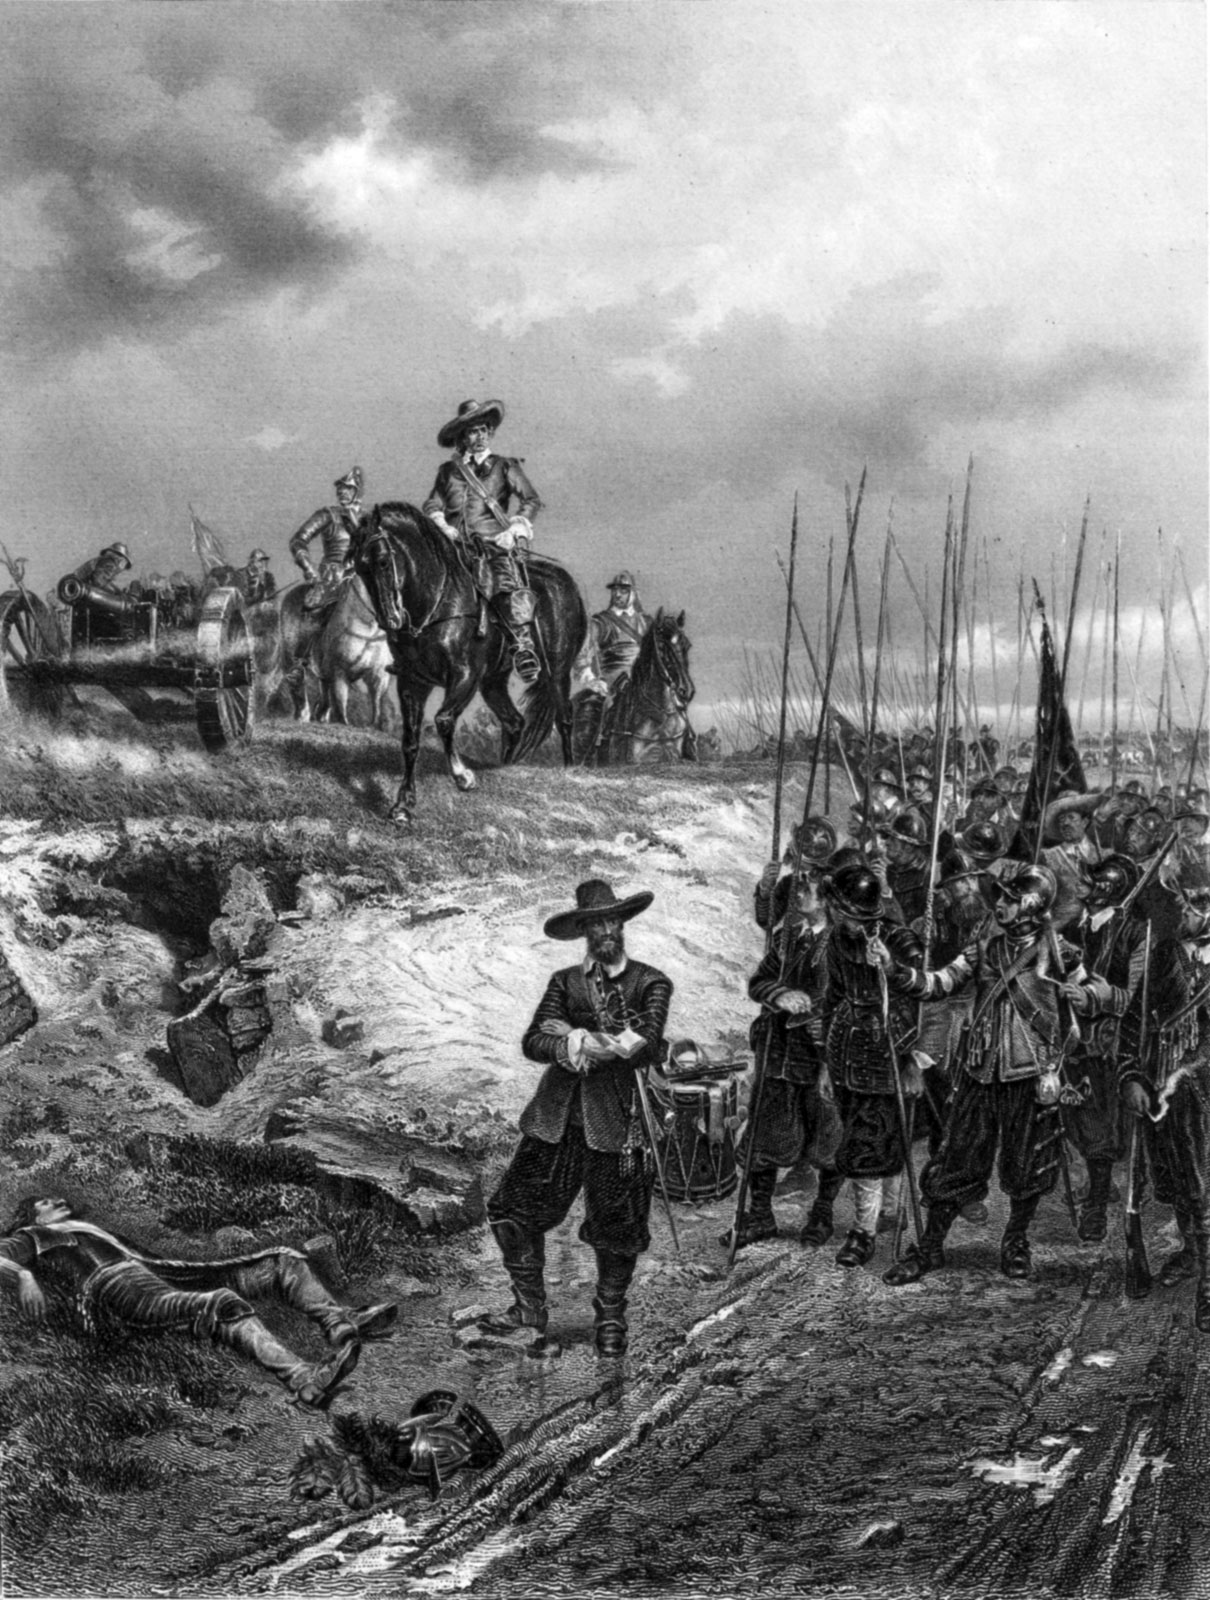 the reason behind the civil war in england in 1642 Convention uses the name the english civil war (1642-1651) to refer collectively to the civil wars in england and the scottish civil war, which began with the raising of king charles i's standard at nottingham on 22 august 1642, and ended on 3 september 1651 at the battle of worcester.